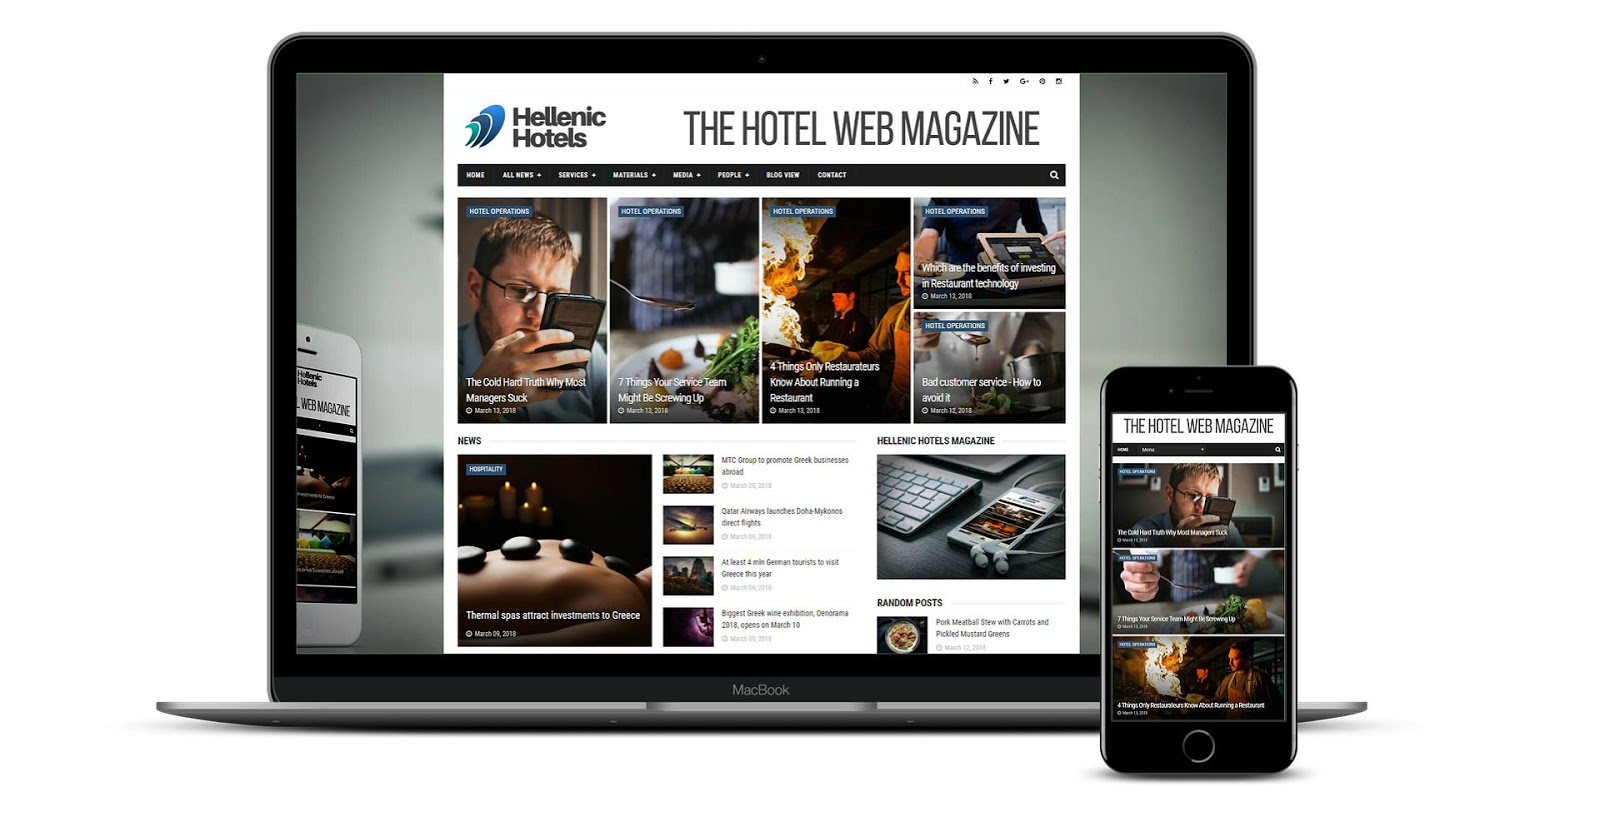 hellenic-hotels-preview